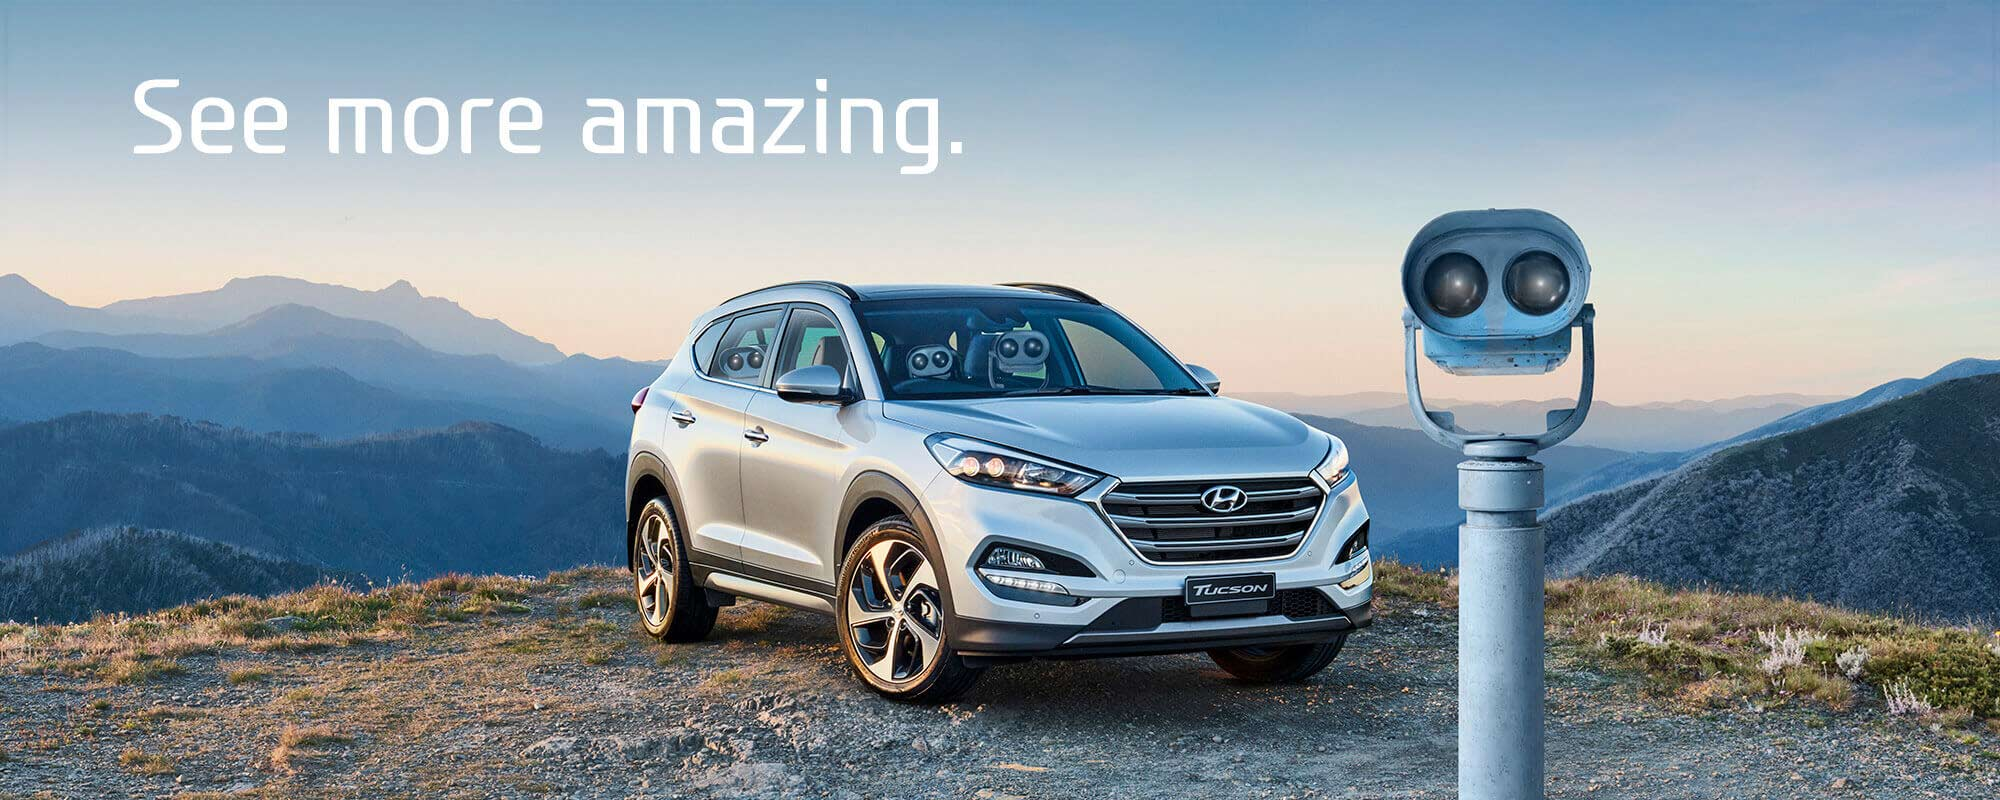 See more amazing with the all new Hyundai Tucson at Brendale Hyundai.